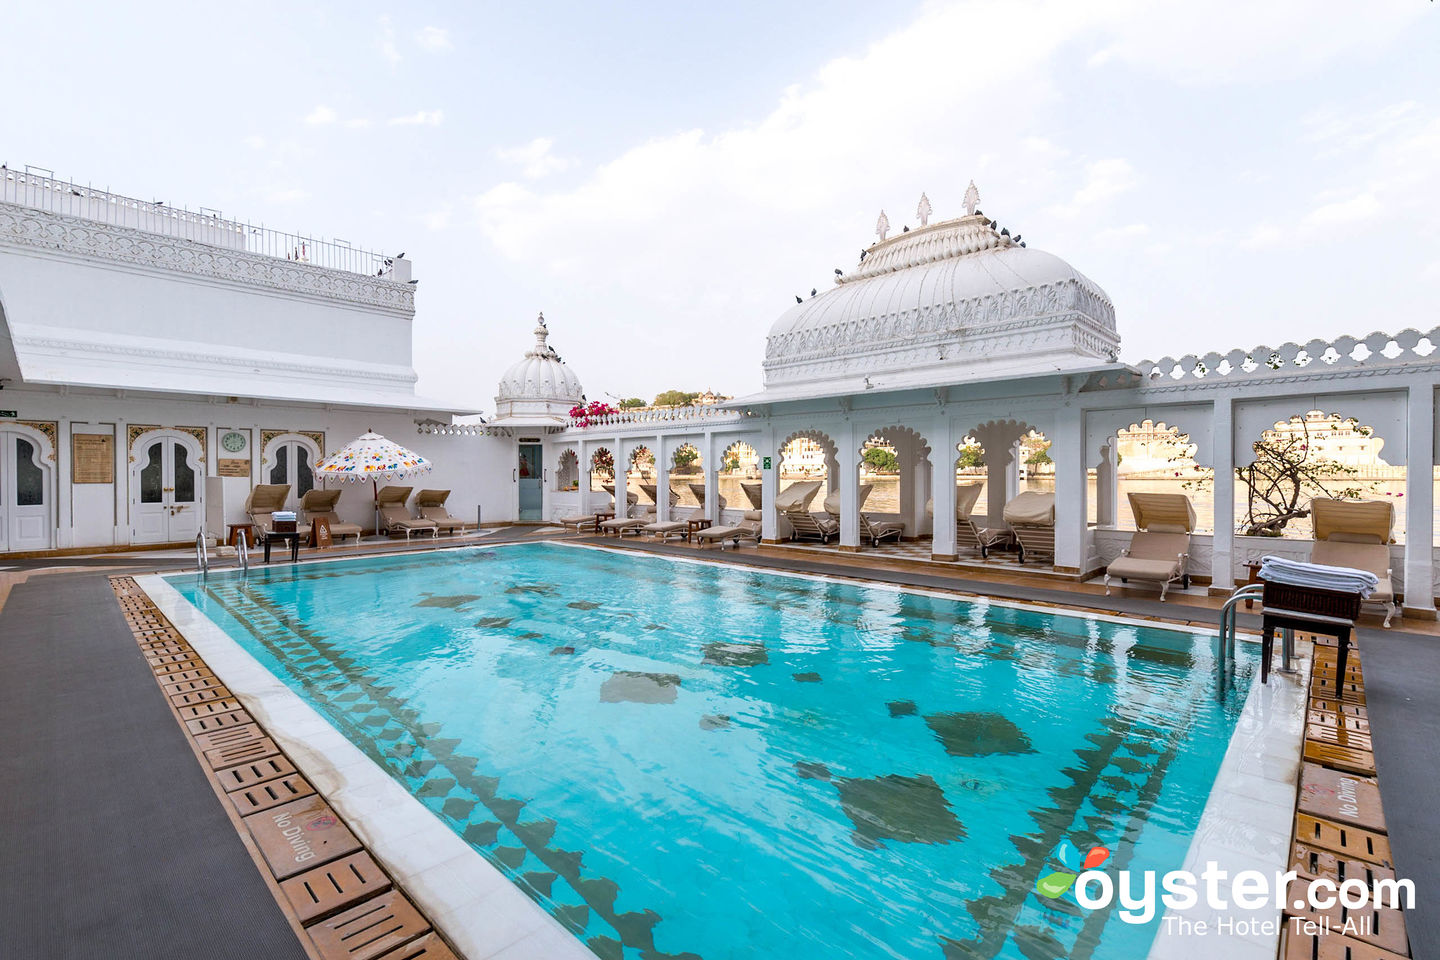 The Best Kid-Friendly Hotels in India | Oyster com